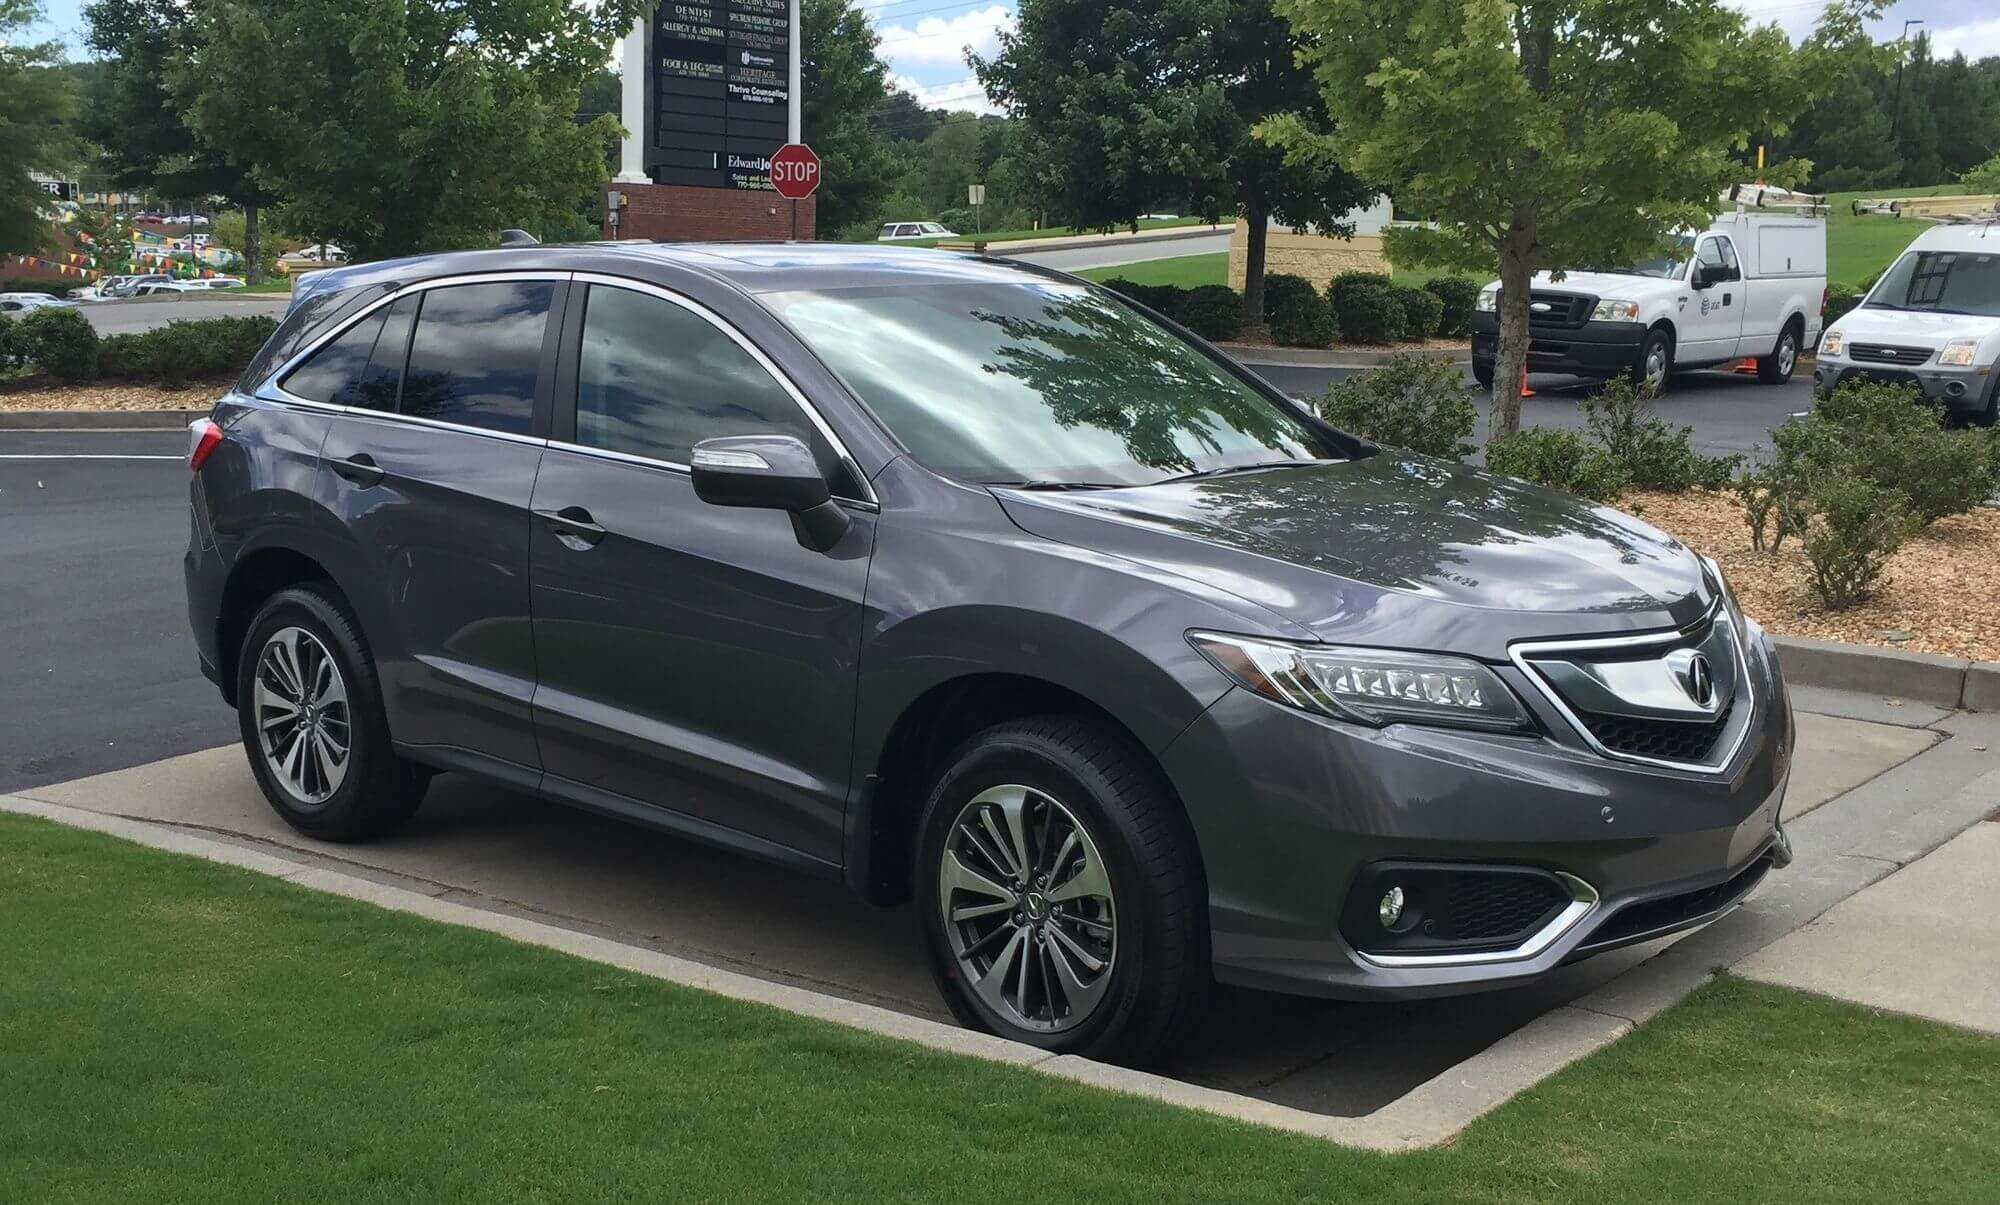 21 A Release Date For 2020 Acura Rdx Price Design And Review